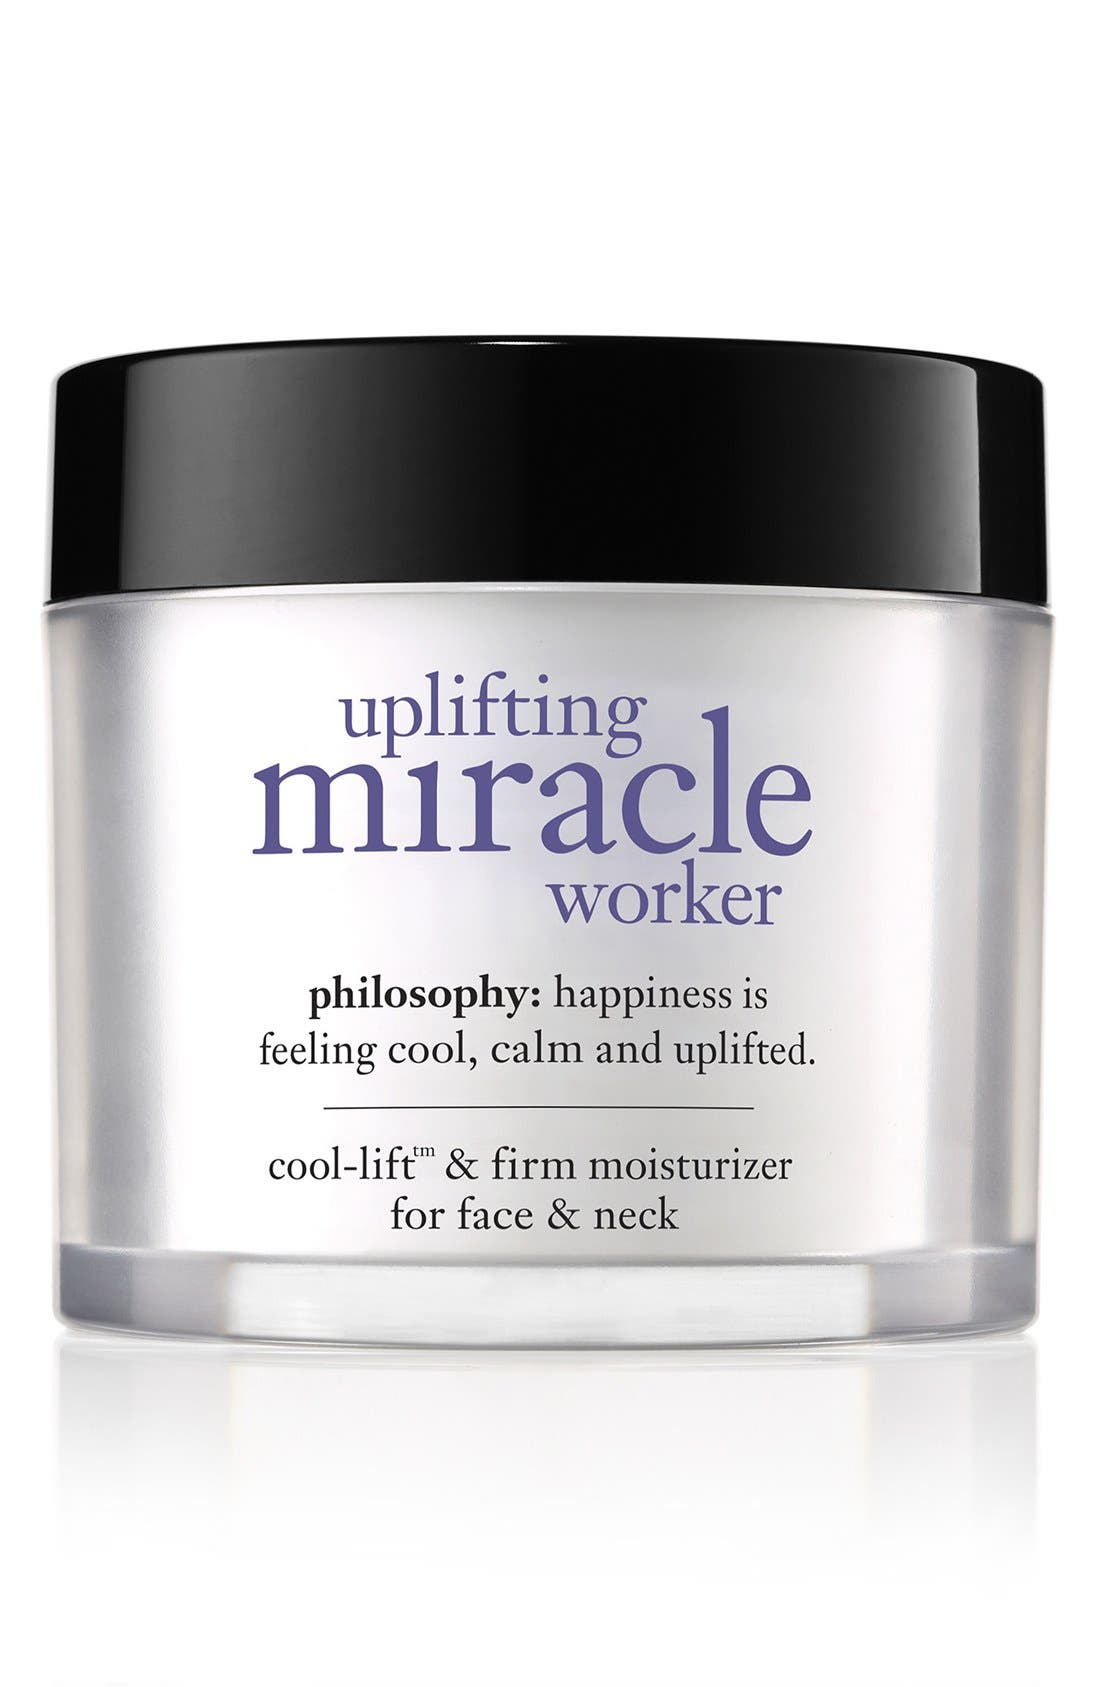 philosophy 'uplifting miracle worker' face moisturizer